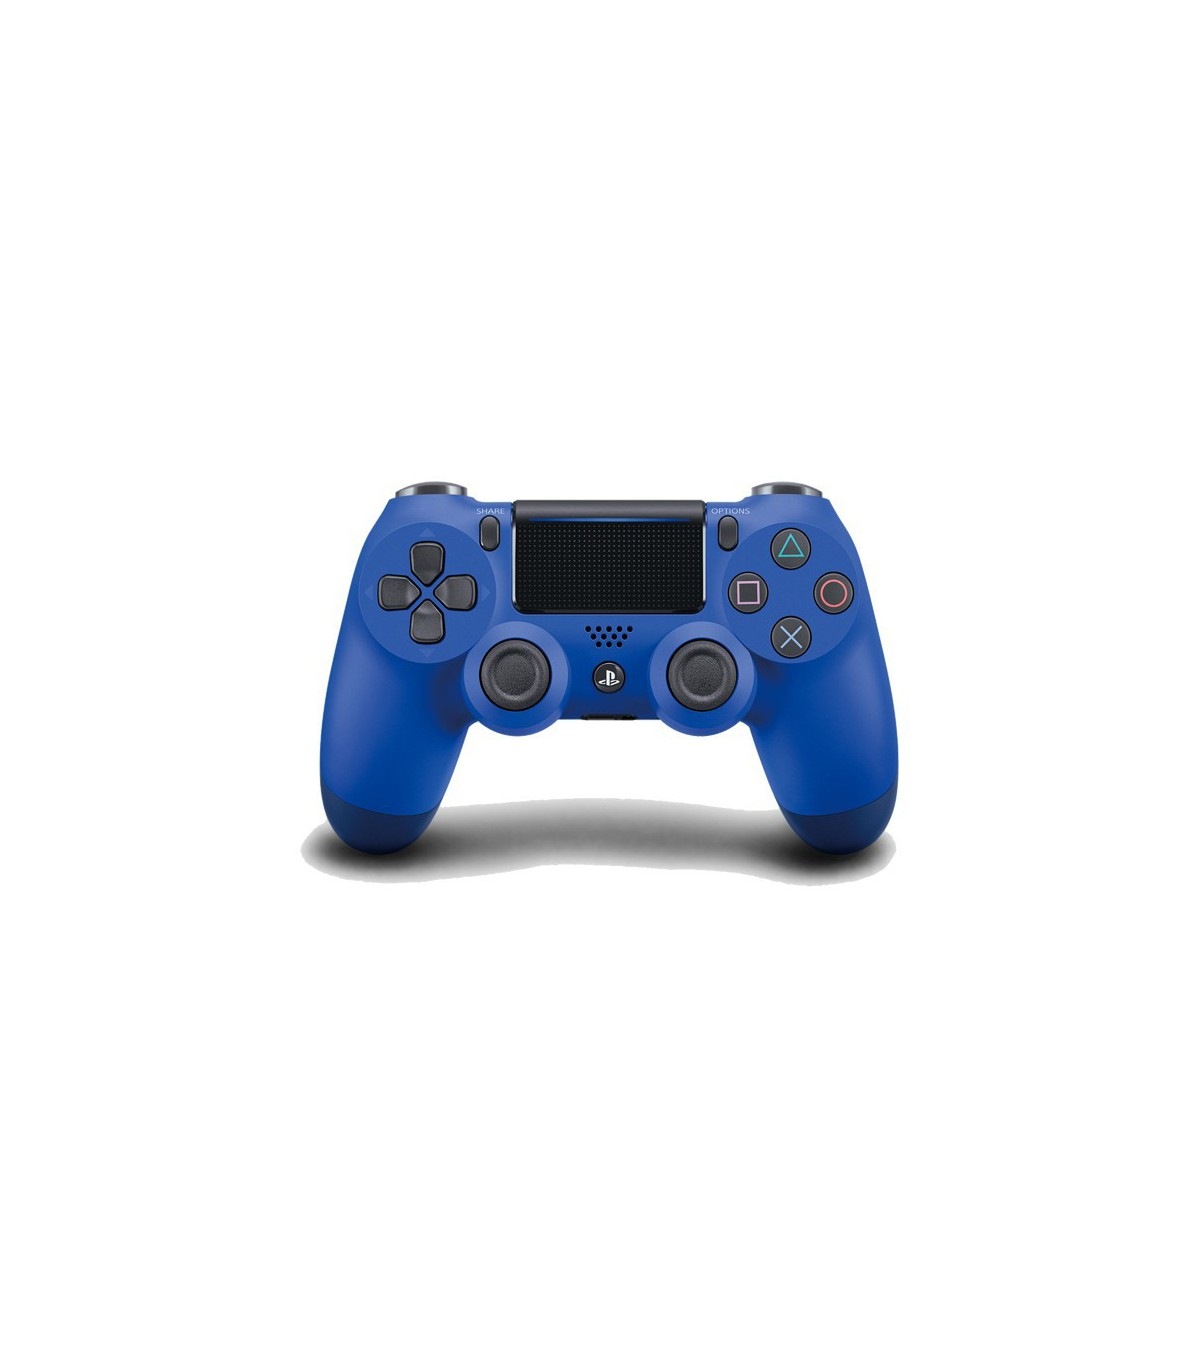 دسته آبی اسلیم DualShock 4 Blue Slim Wireless Controller